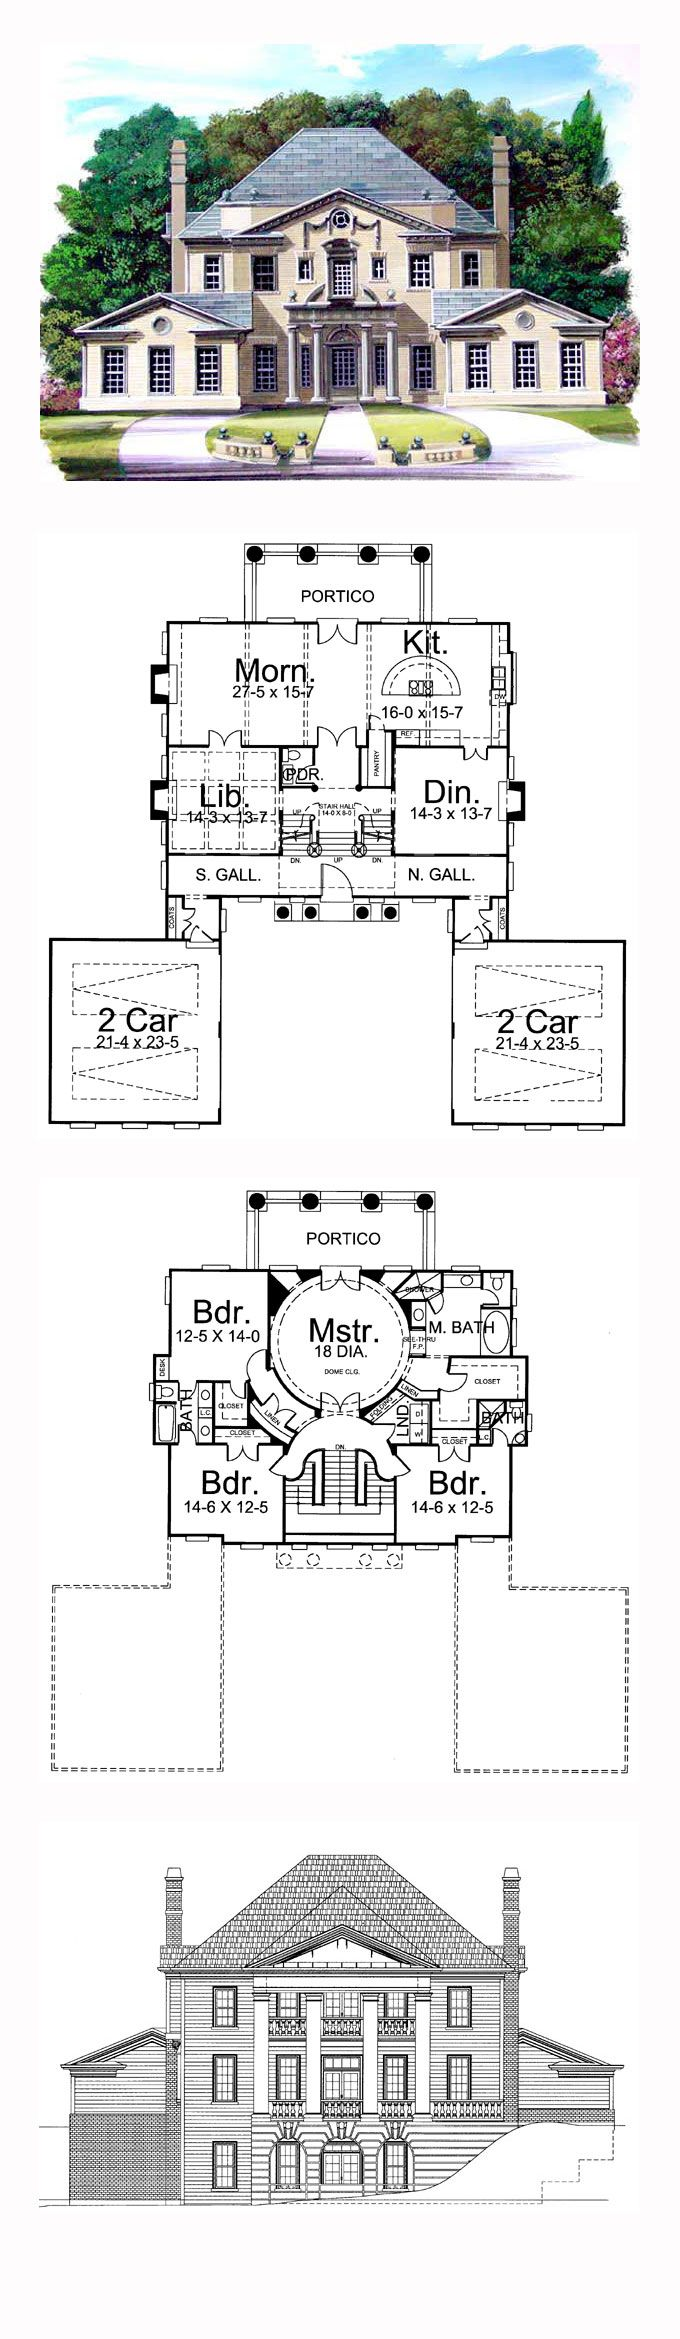 Greek Revival Style House Plan 72049 With 4 Bed 3 Bath 4 Car Garage House Plans Luxury House Plans House Blueprints